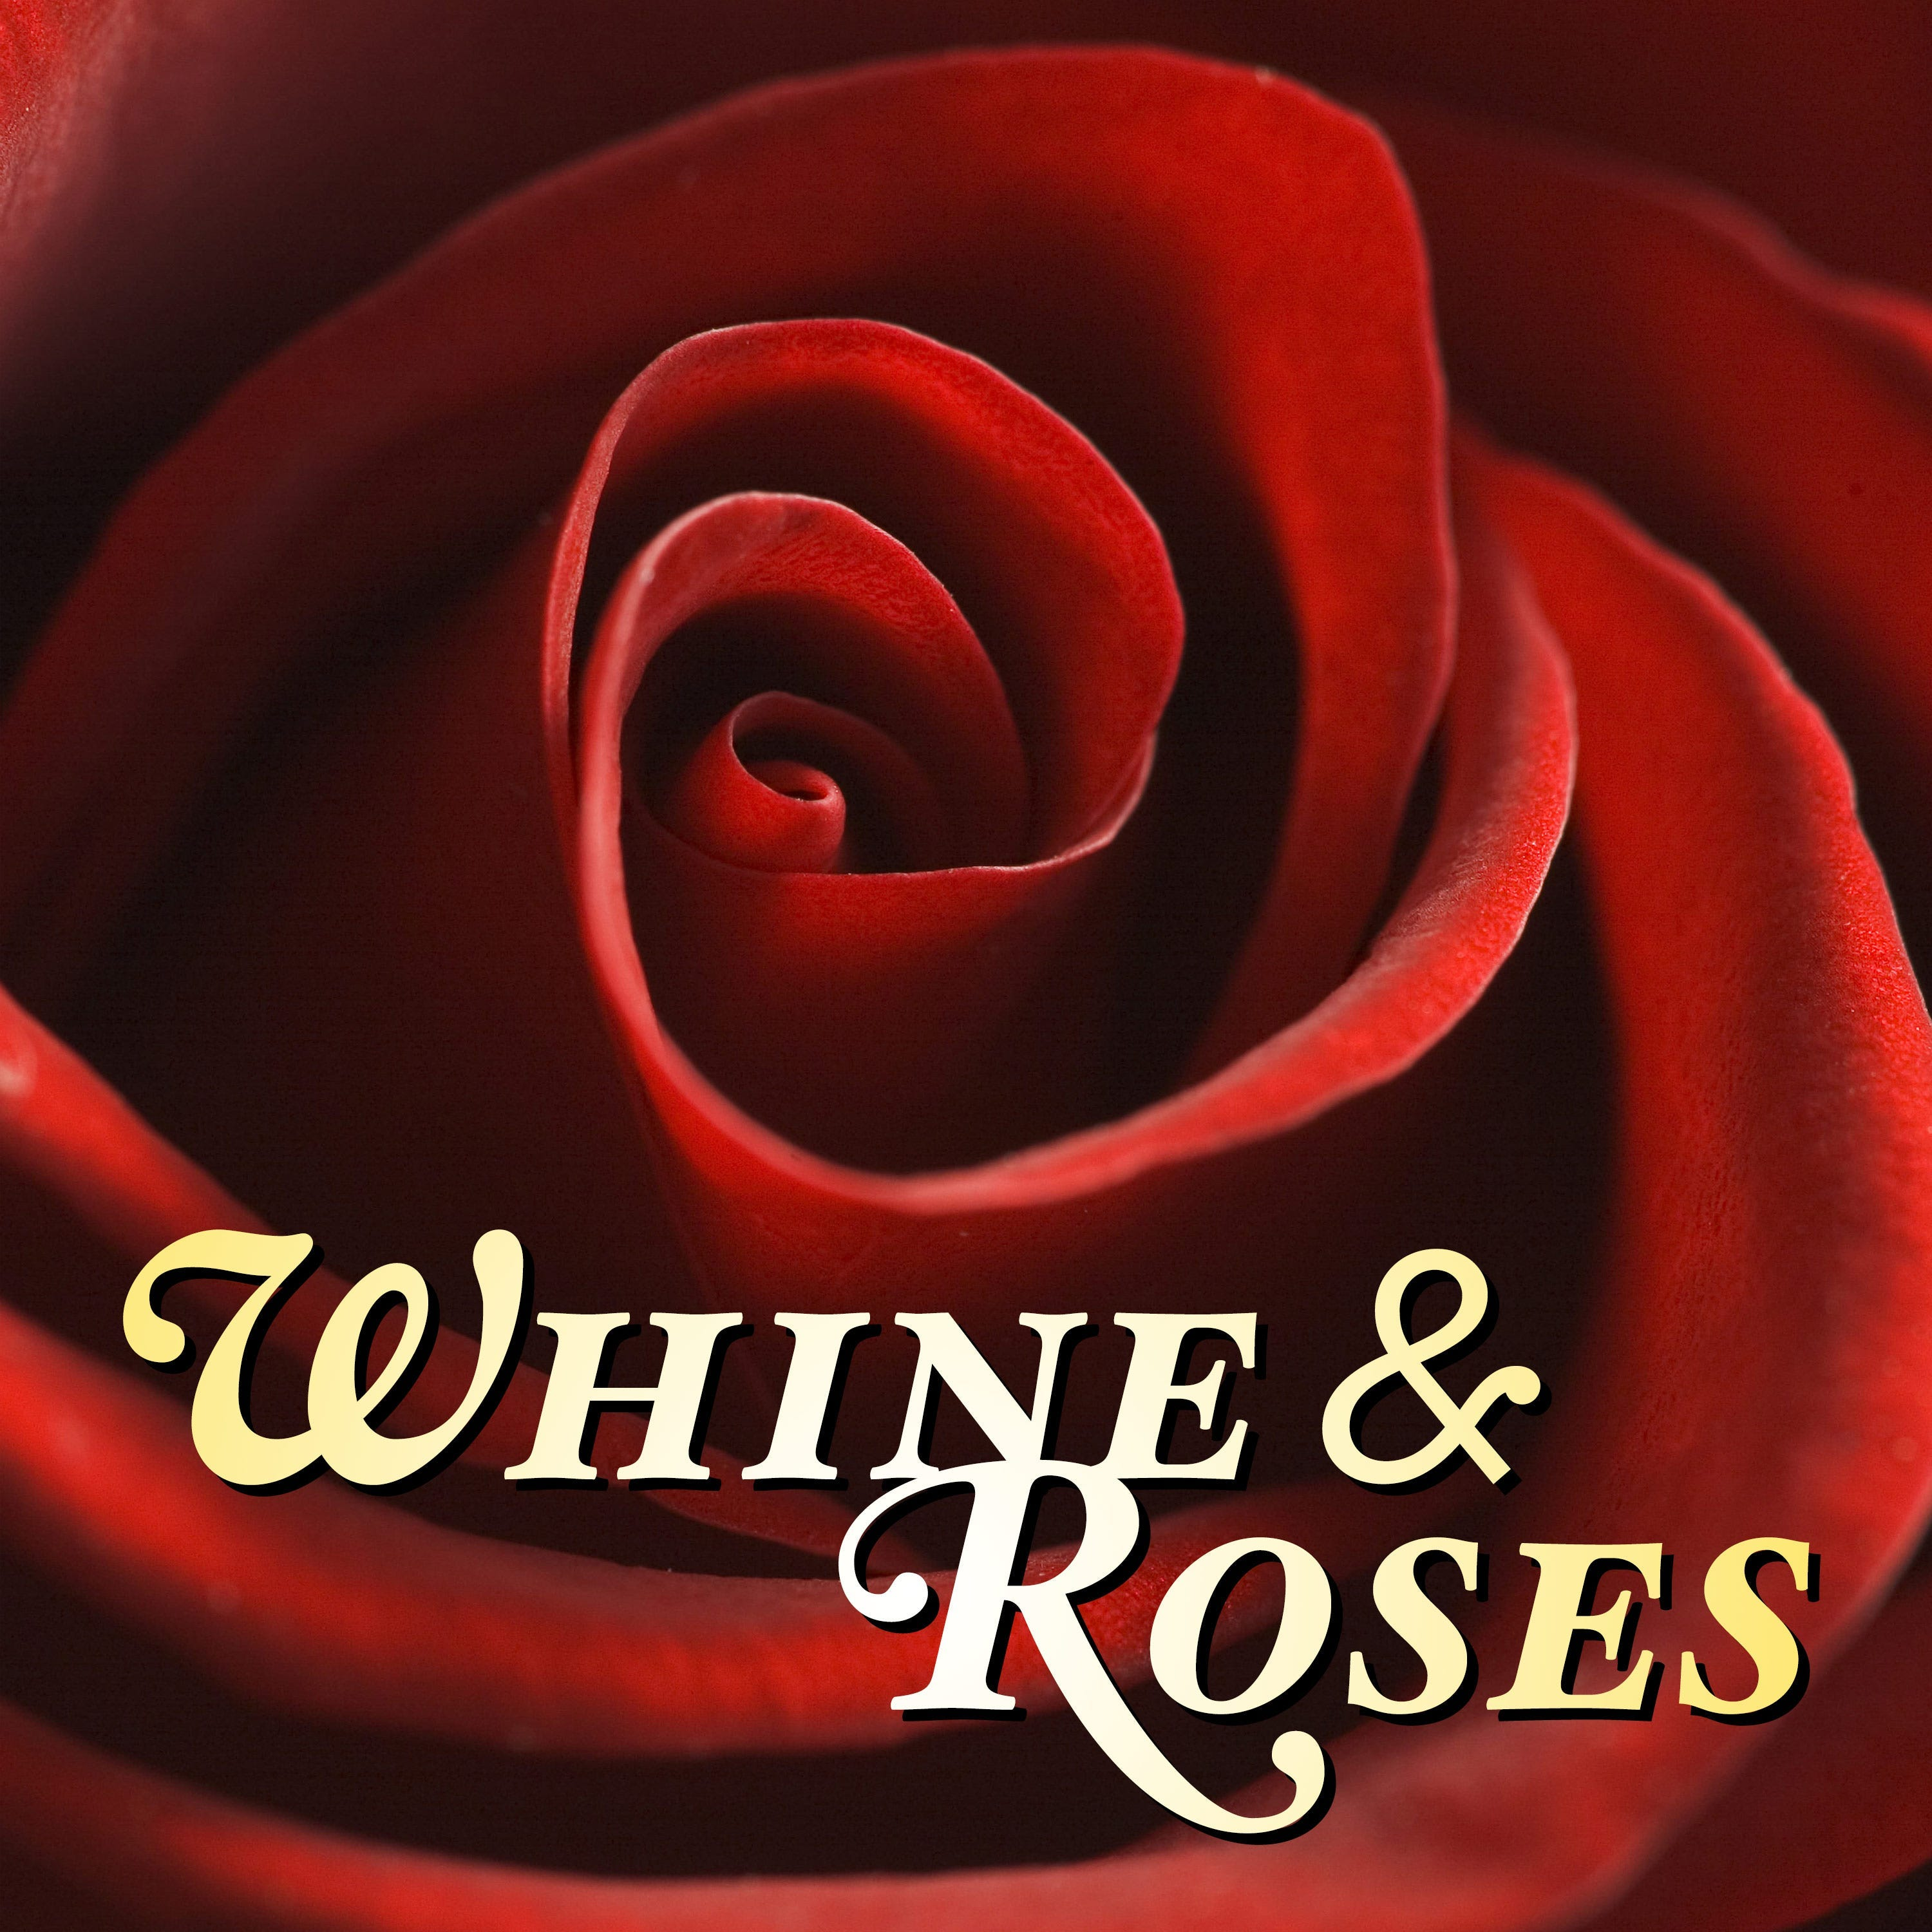 Whine & Roses: The Bachelor & The Bachelorette